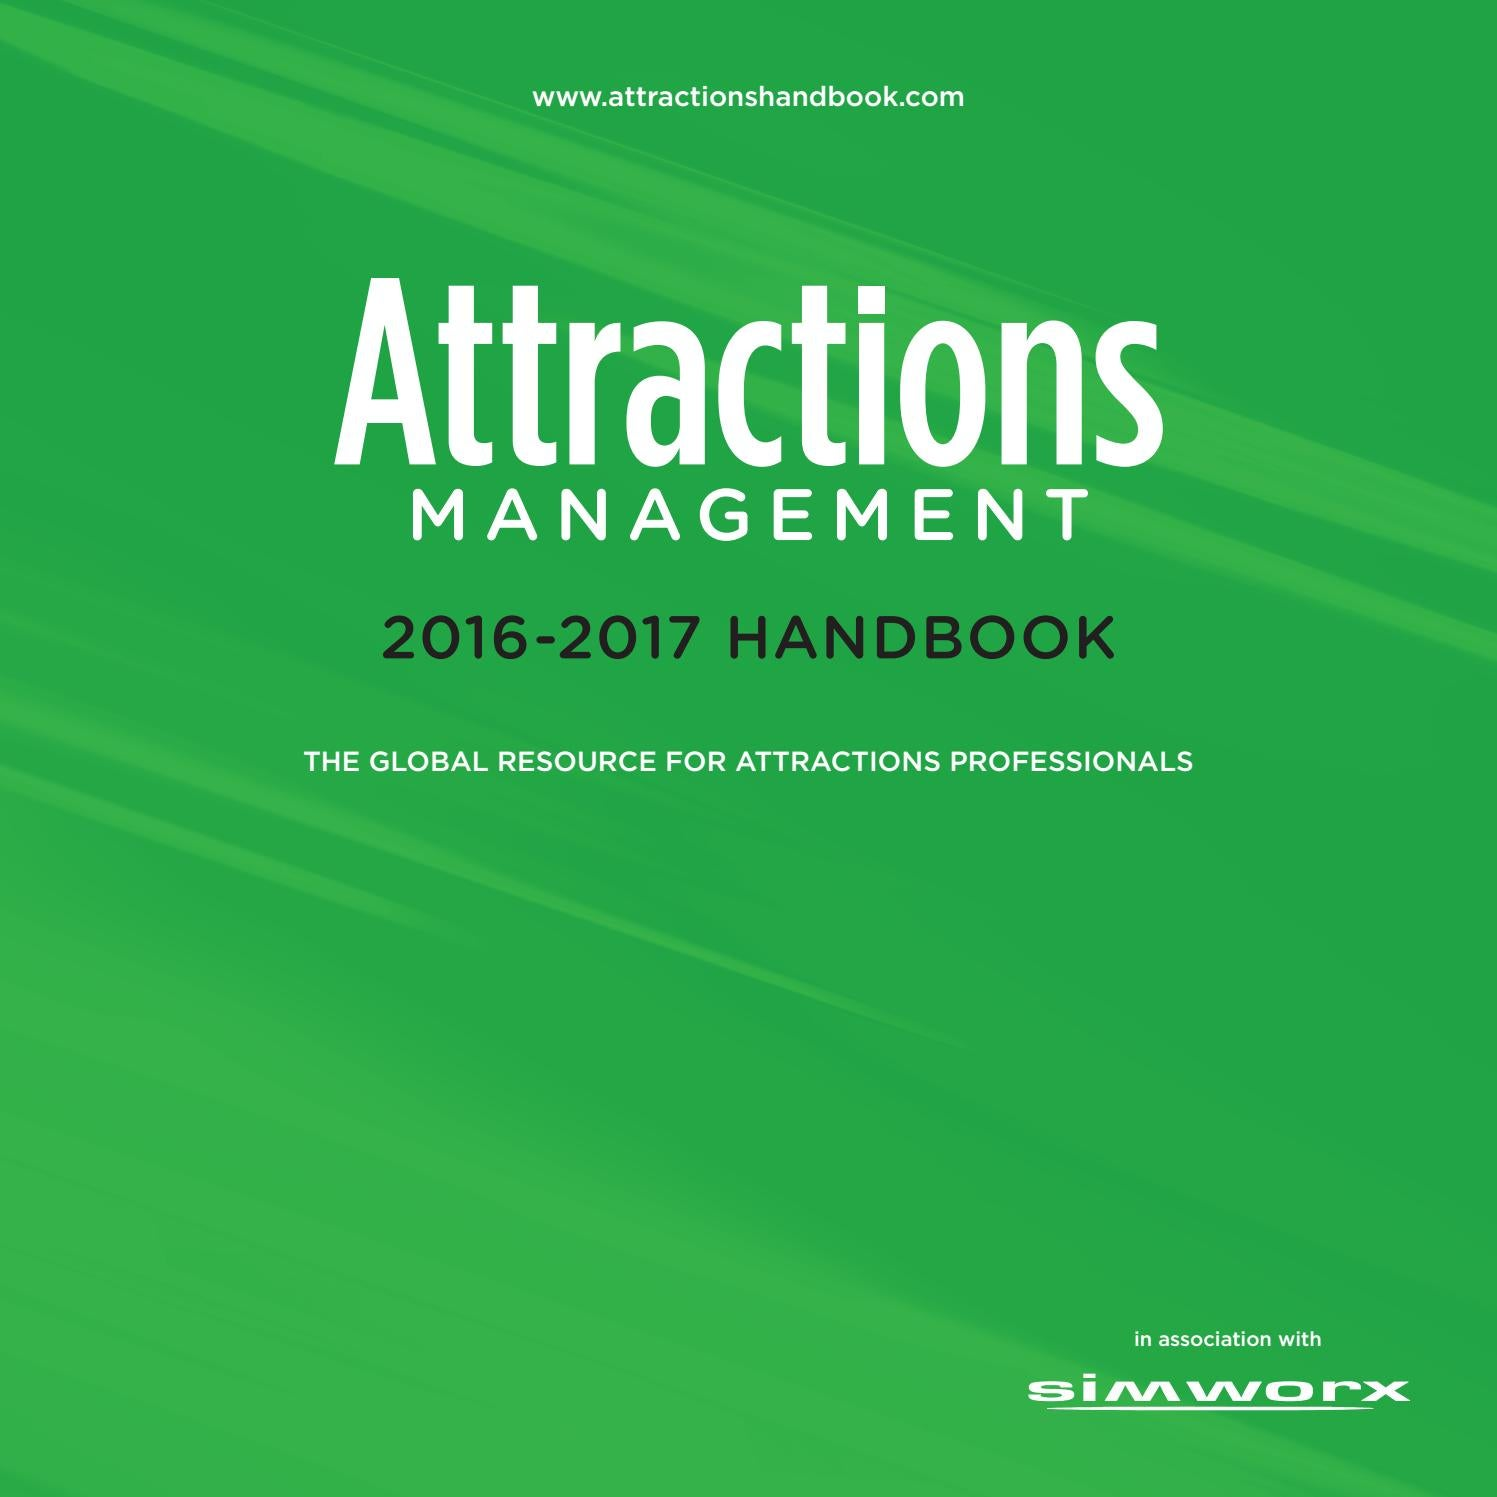 Attractions Management Handbook 2016 2017 By Leisure Media Issuu Alexandre Christie Ac 6448 Md Silver Black Rose Gold